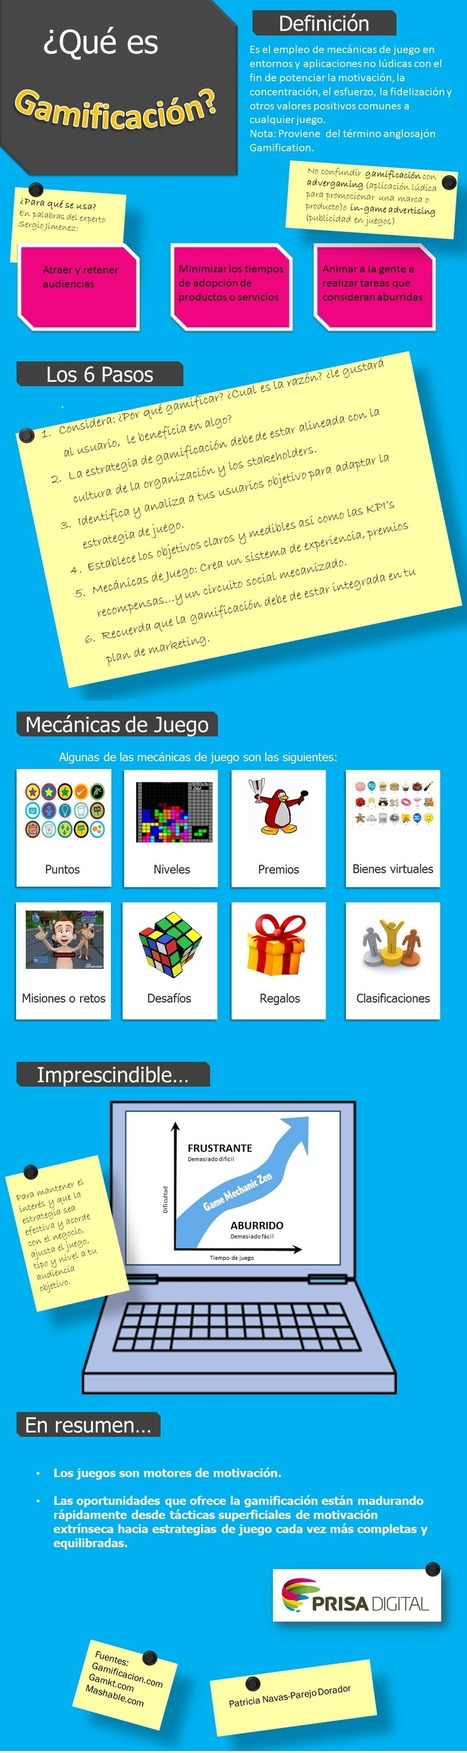 Qué es gamificación #infografia #infographic | (I+D)+(i+c): Gamification, Game-Based Learning (GBL) | Scoop.it